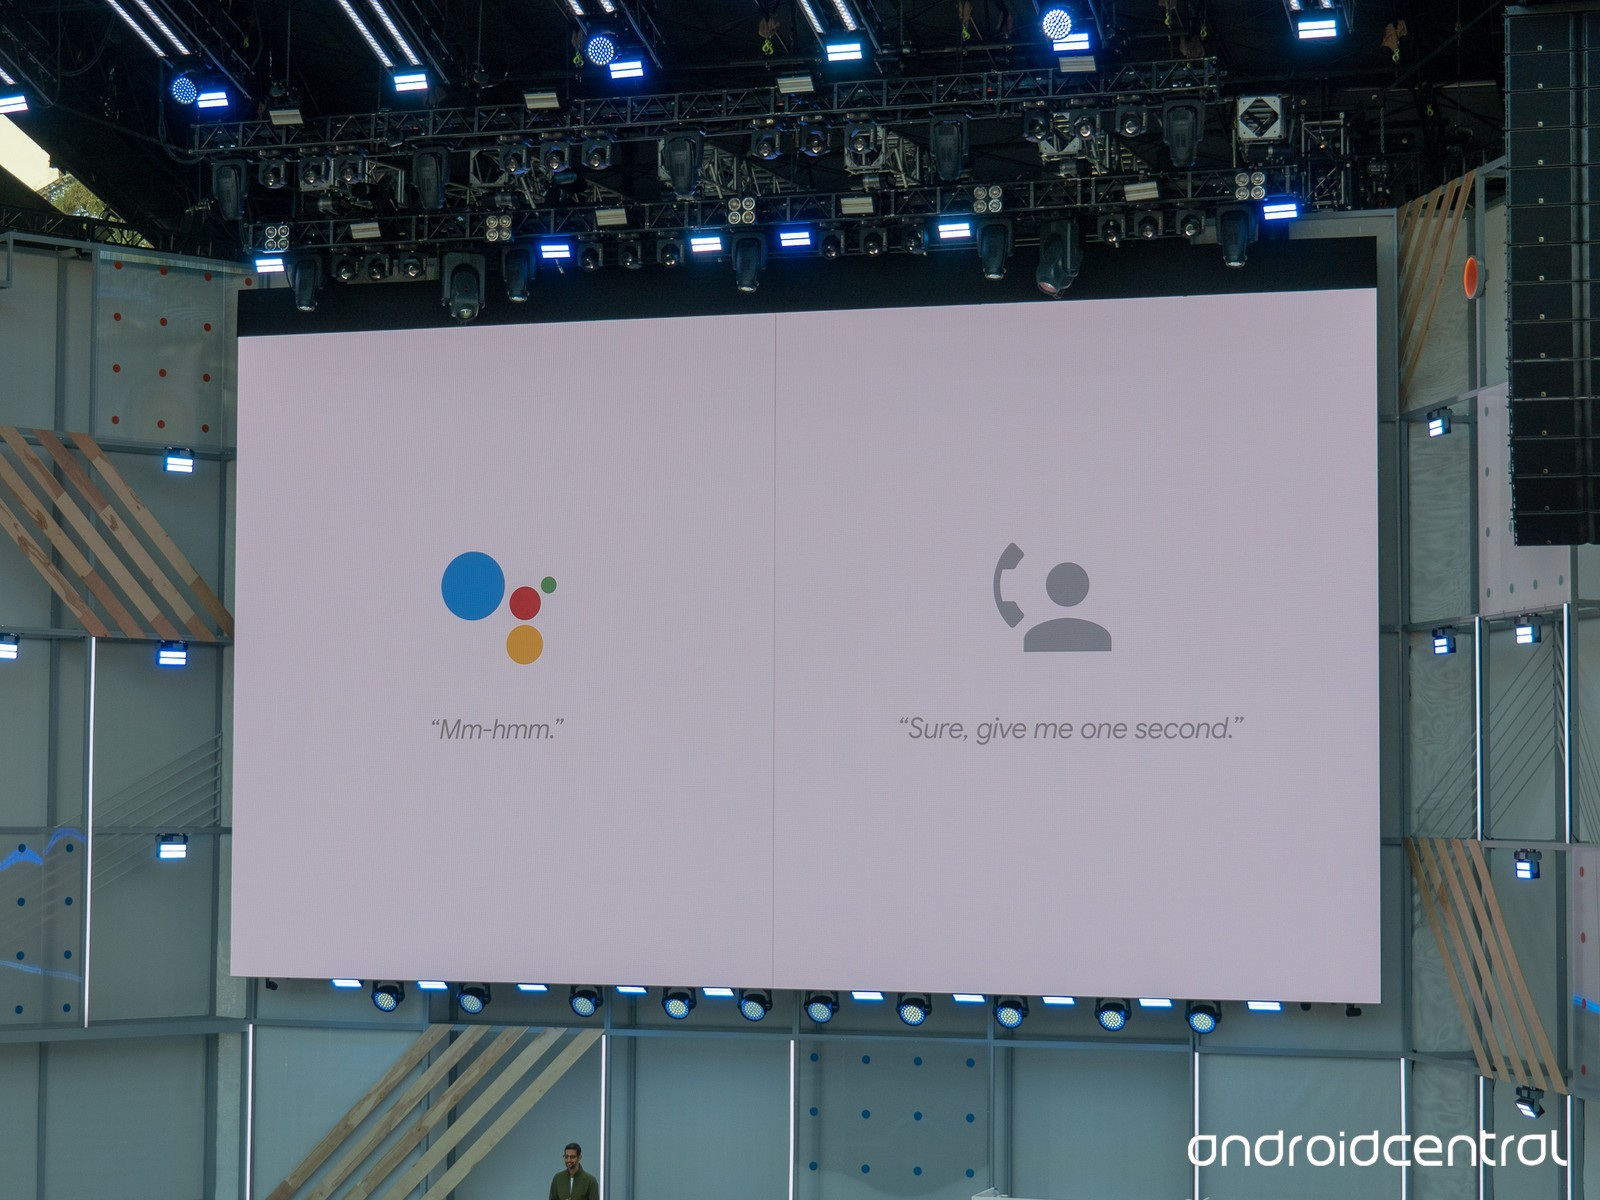 A big screen showing two images - one of google duplex logo and another of an icon representing a human phonecaller